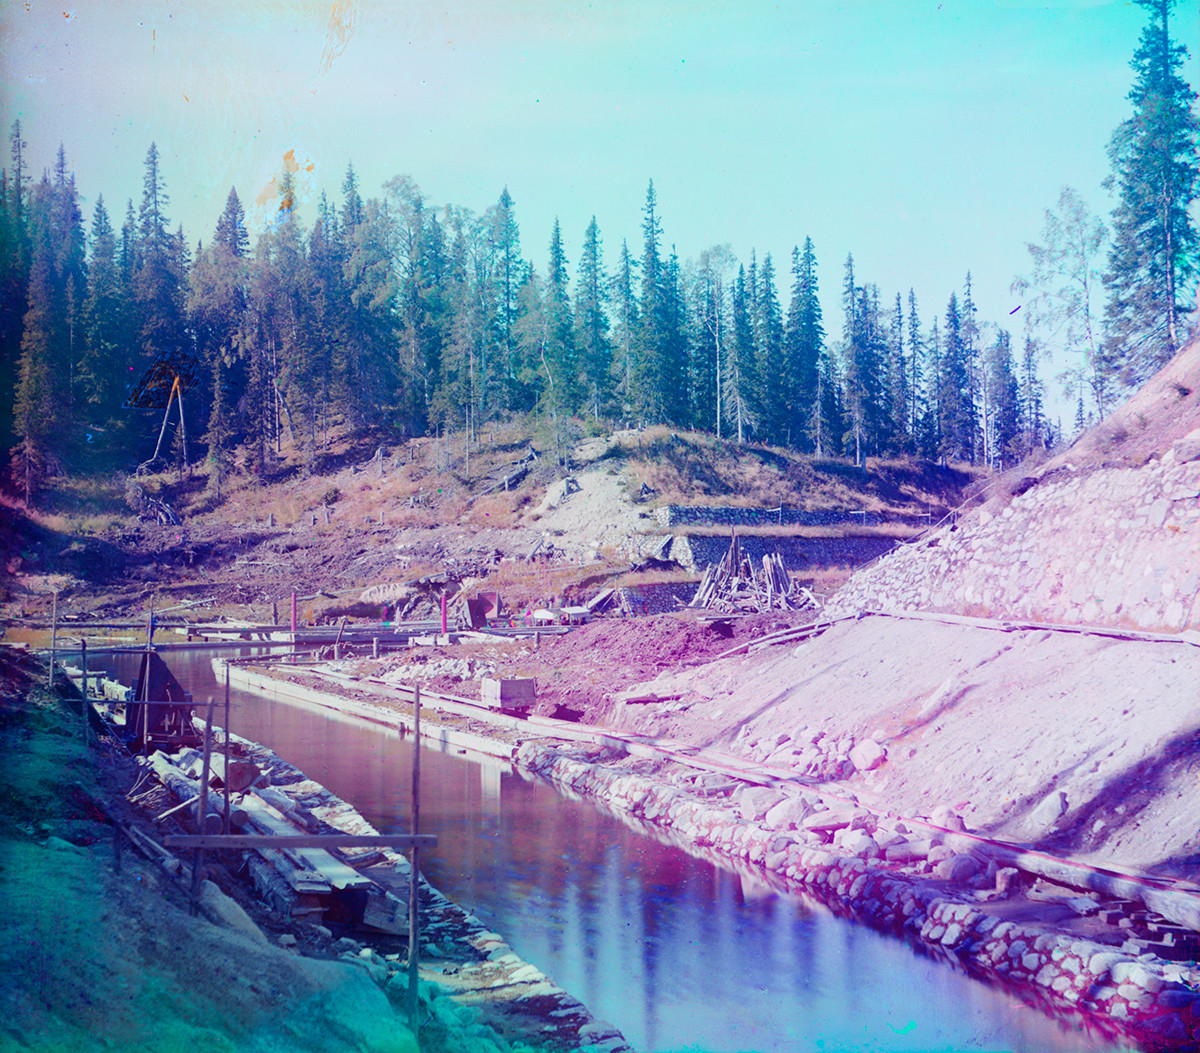 Great Solovetsky Island. Boat canal under construction between Long Lake & Little Red Lake. Late summer 1916